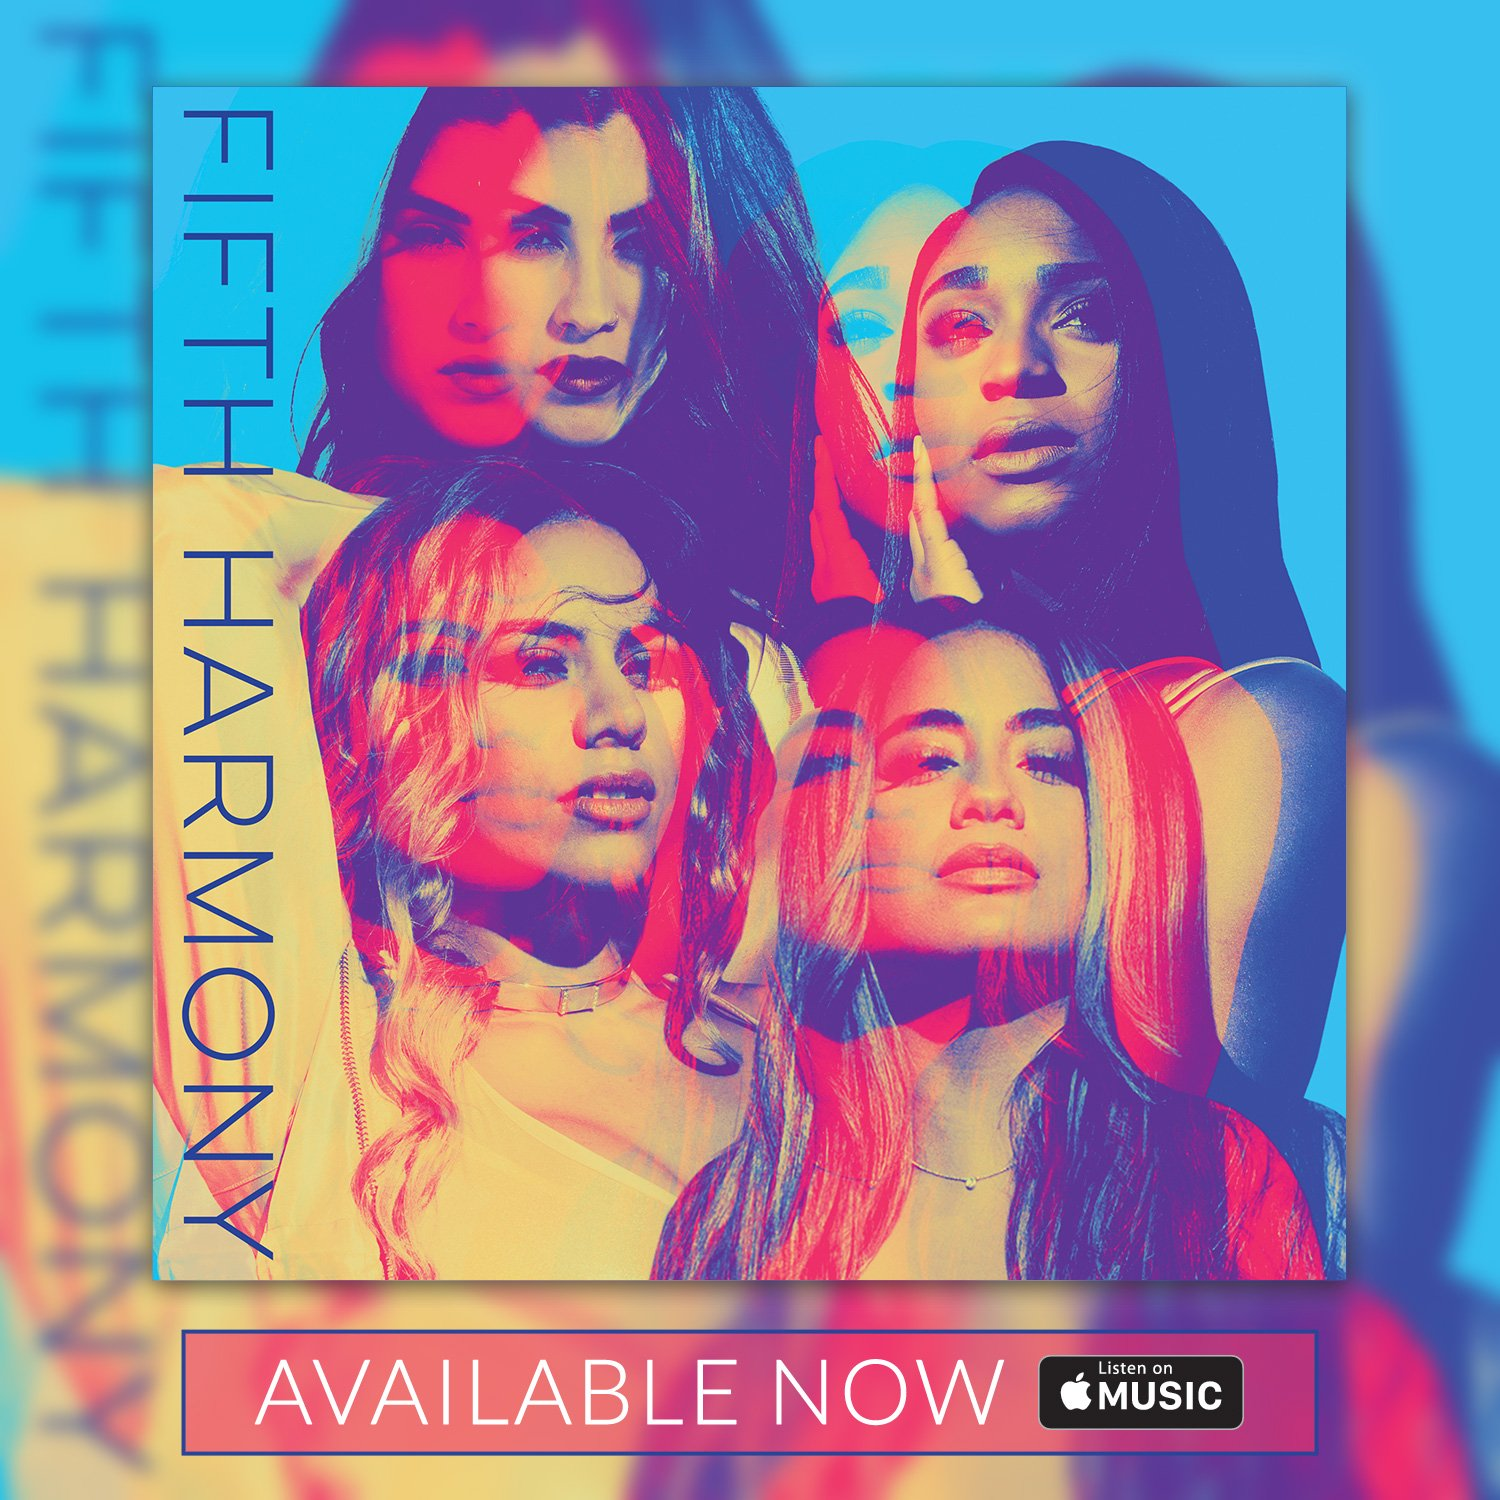 #FifthHarmony has ARRIVED and you can listen to it now on @AppleMusic: https://t.co/dqnZFuyXUd https://t.co/ys4OLQuTlu